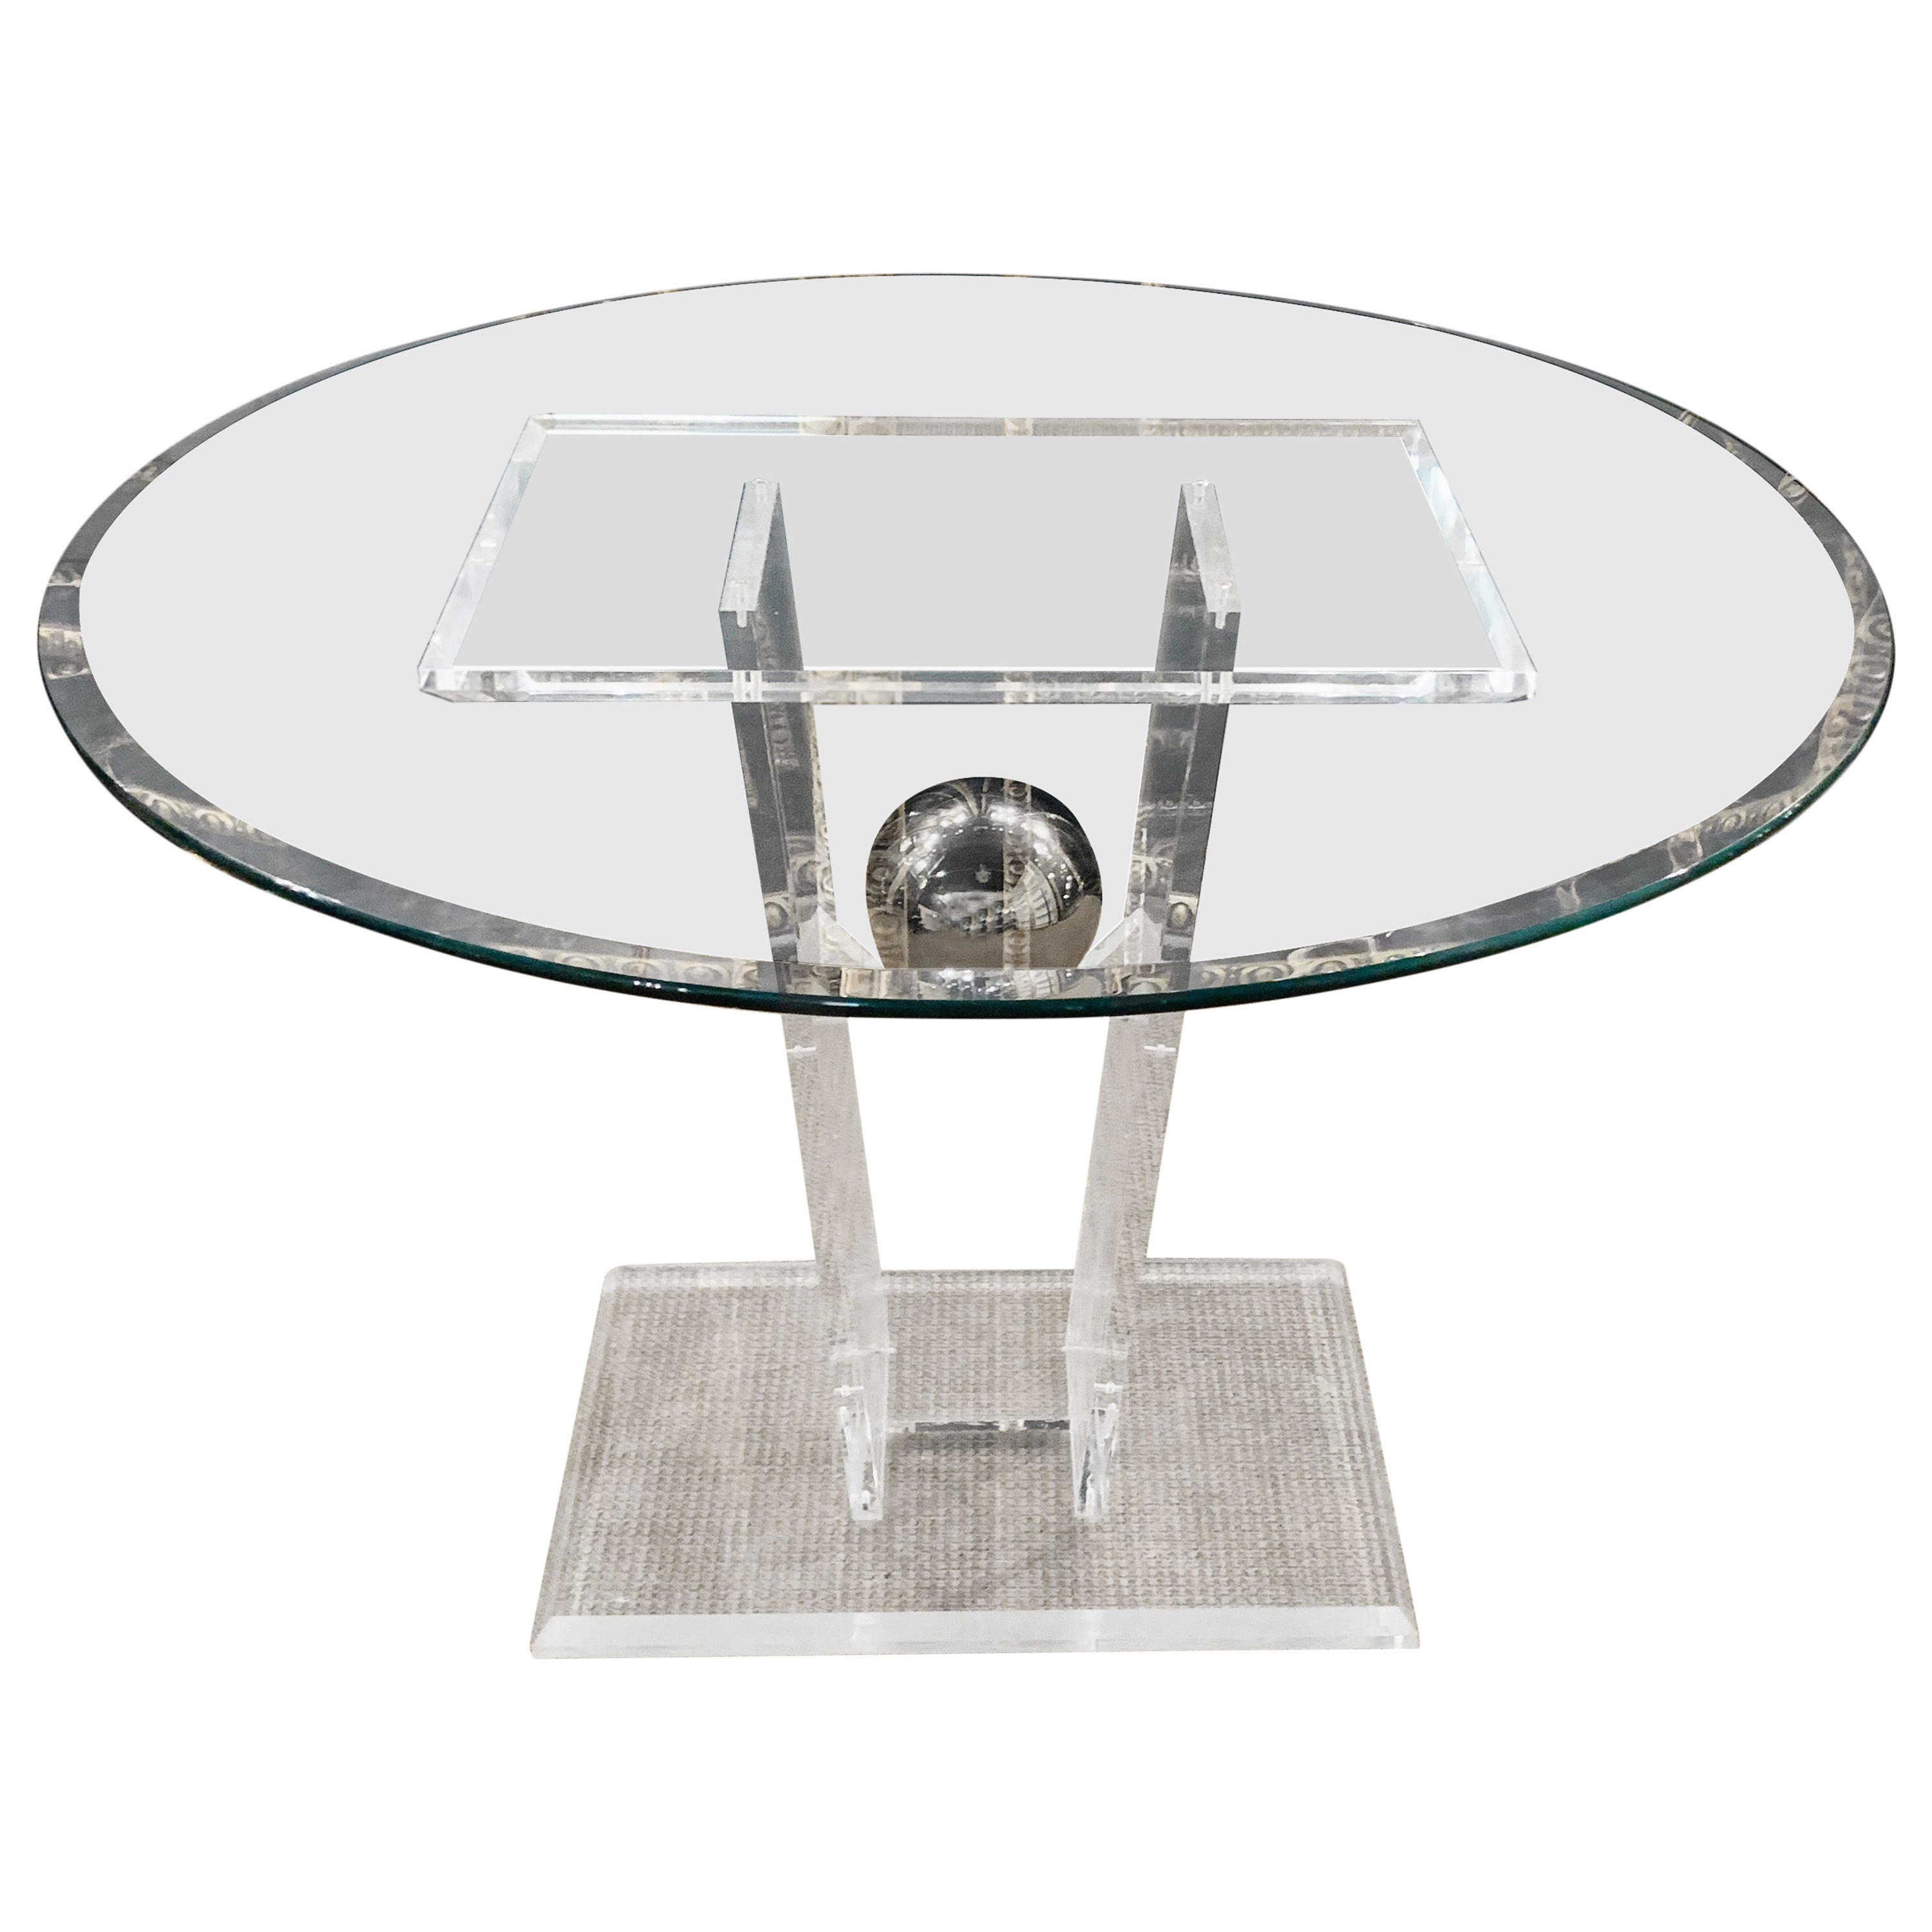 High Quality Acrylic Dining Table with Round Glass Top